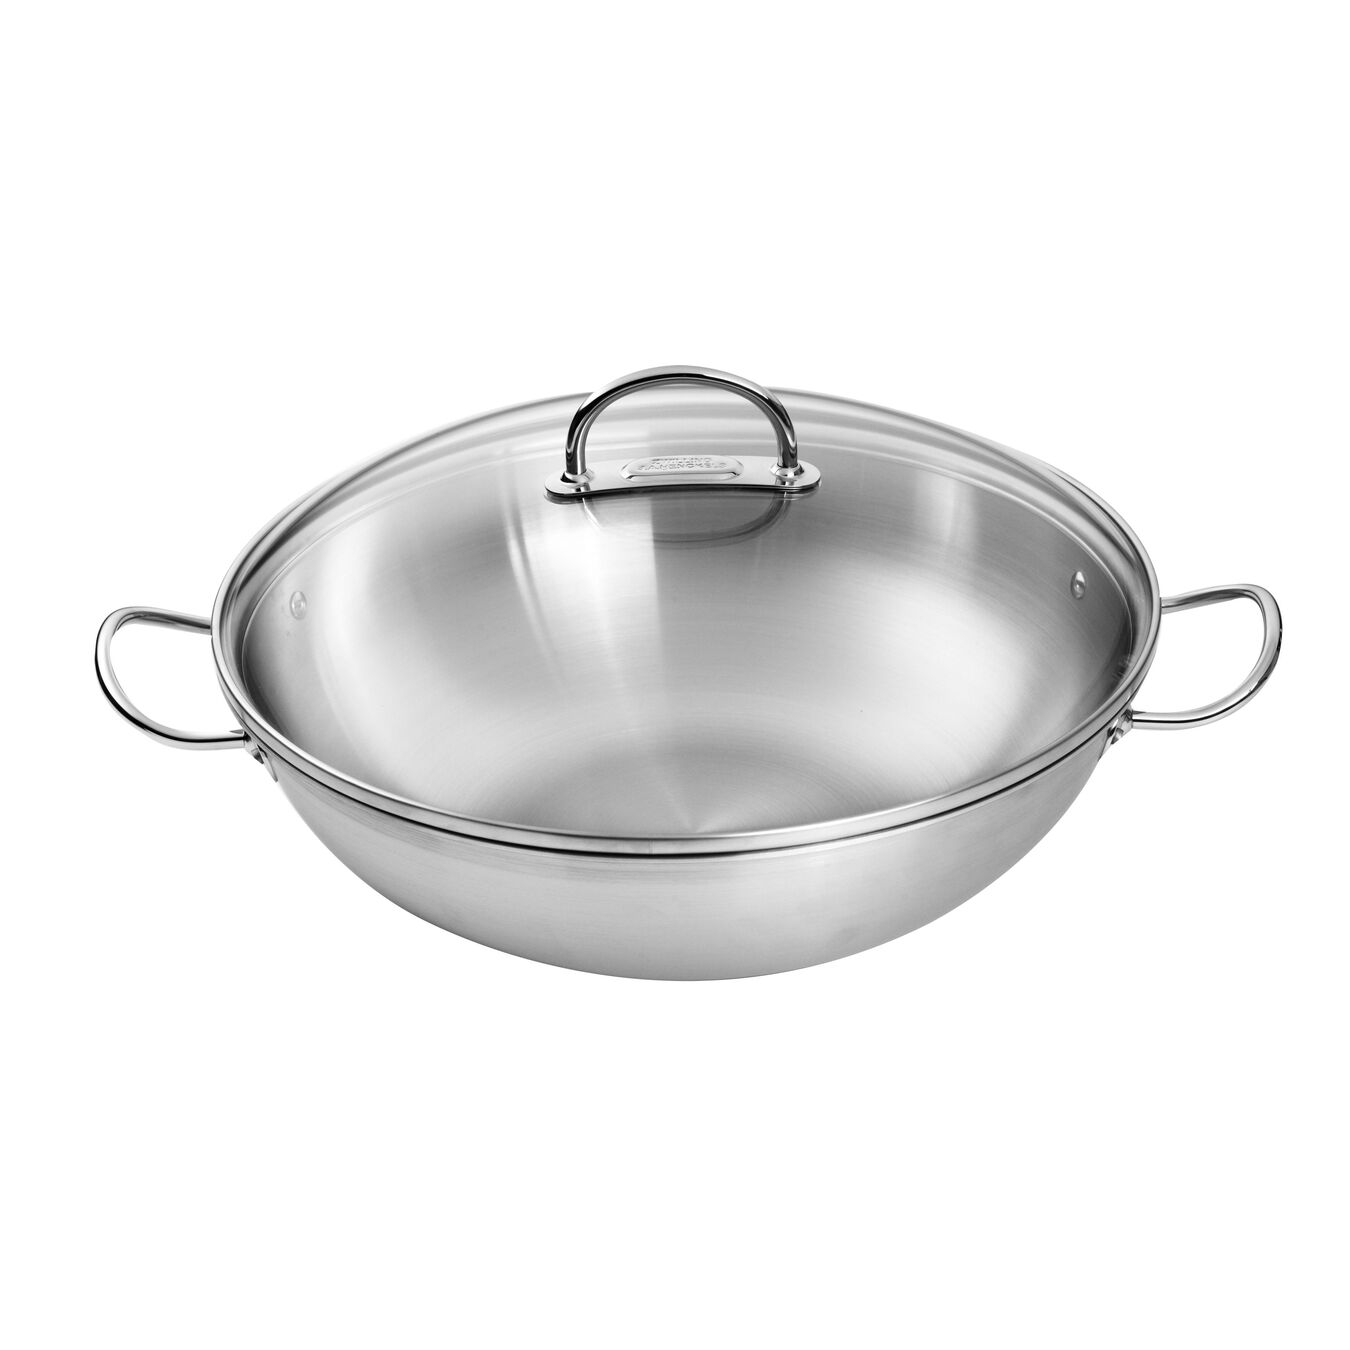 36 cm / 14 inch 18/10 Stainless Steel Wok,,large 1